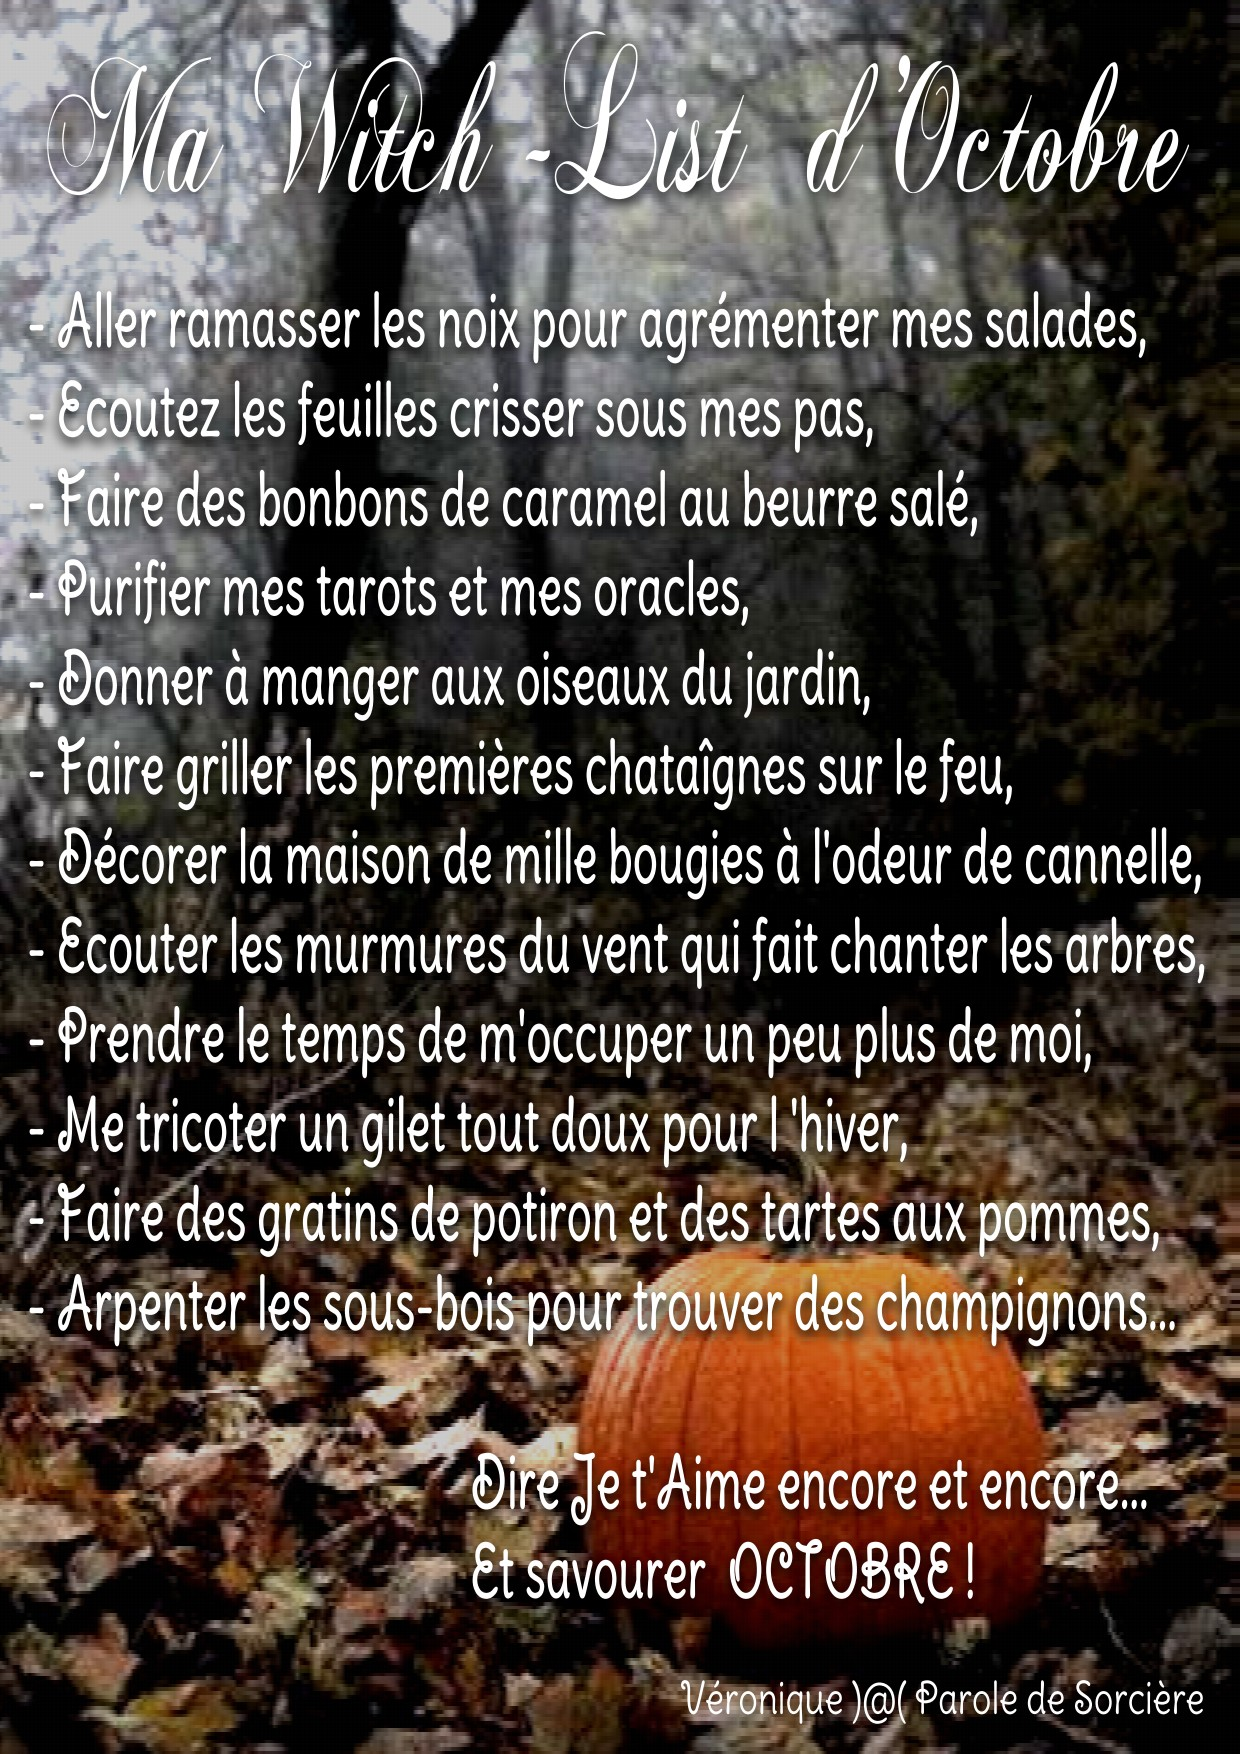 ma witch list - octobre